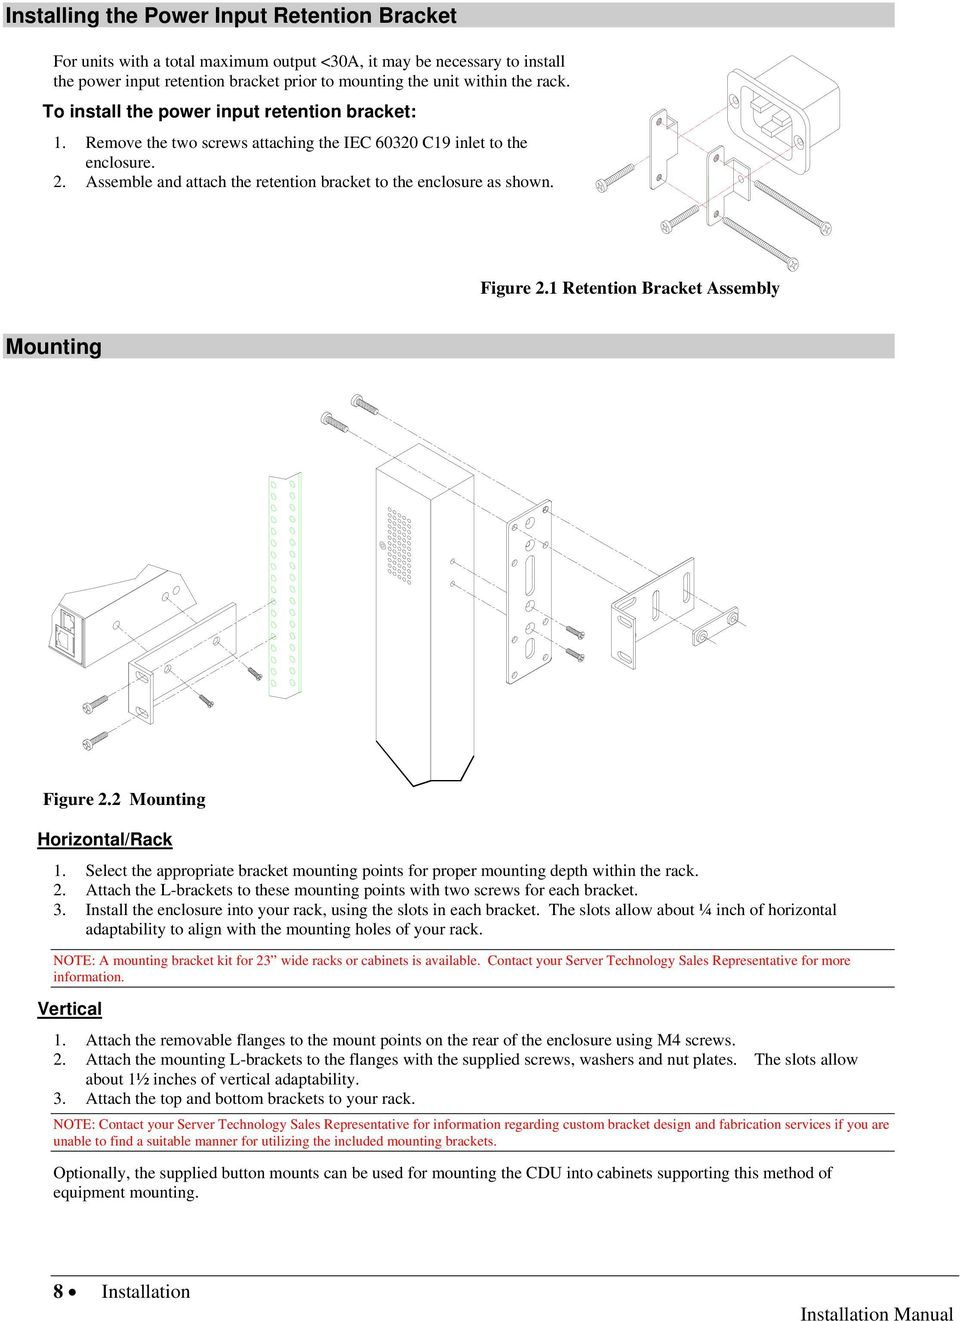 Figure 2.1 Retention Bracket Assembly Mounting Figure 2.2 Mounting Horizontal/Rack 1. Select the appropriate bracket mounting points for proper mounting depth within the rack. 2. Attach the L-brackets to these mounting points with two screws for each bracket.